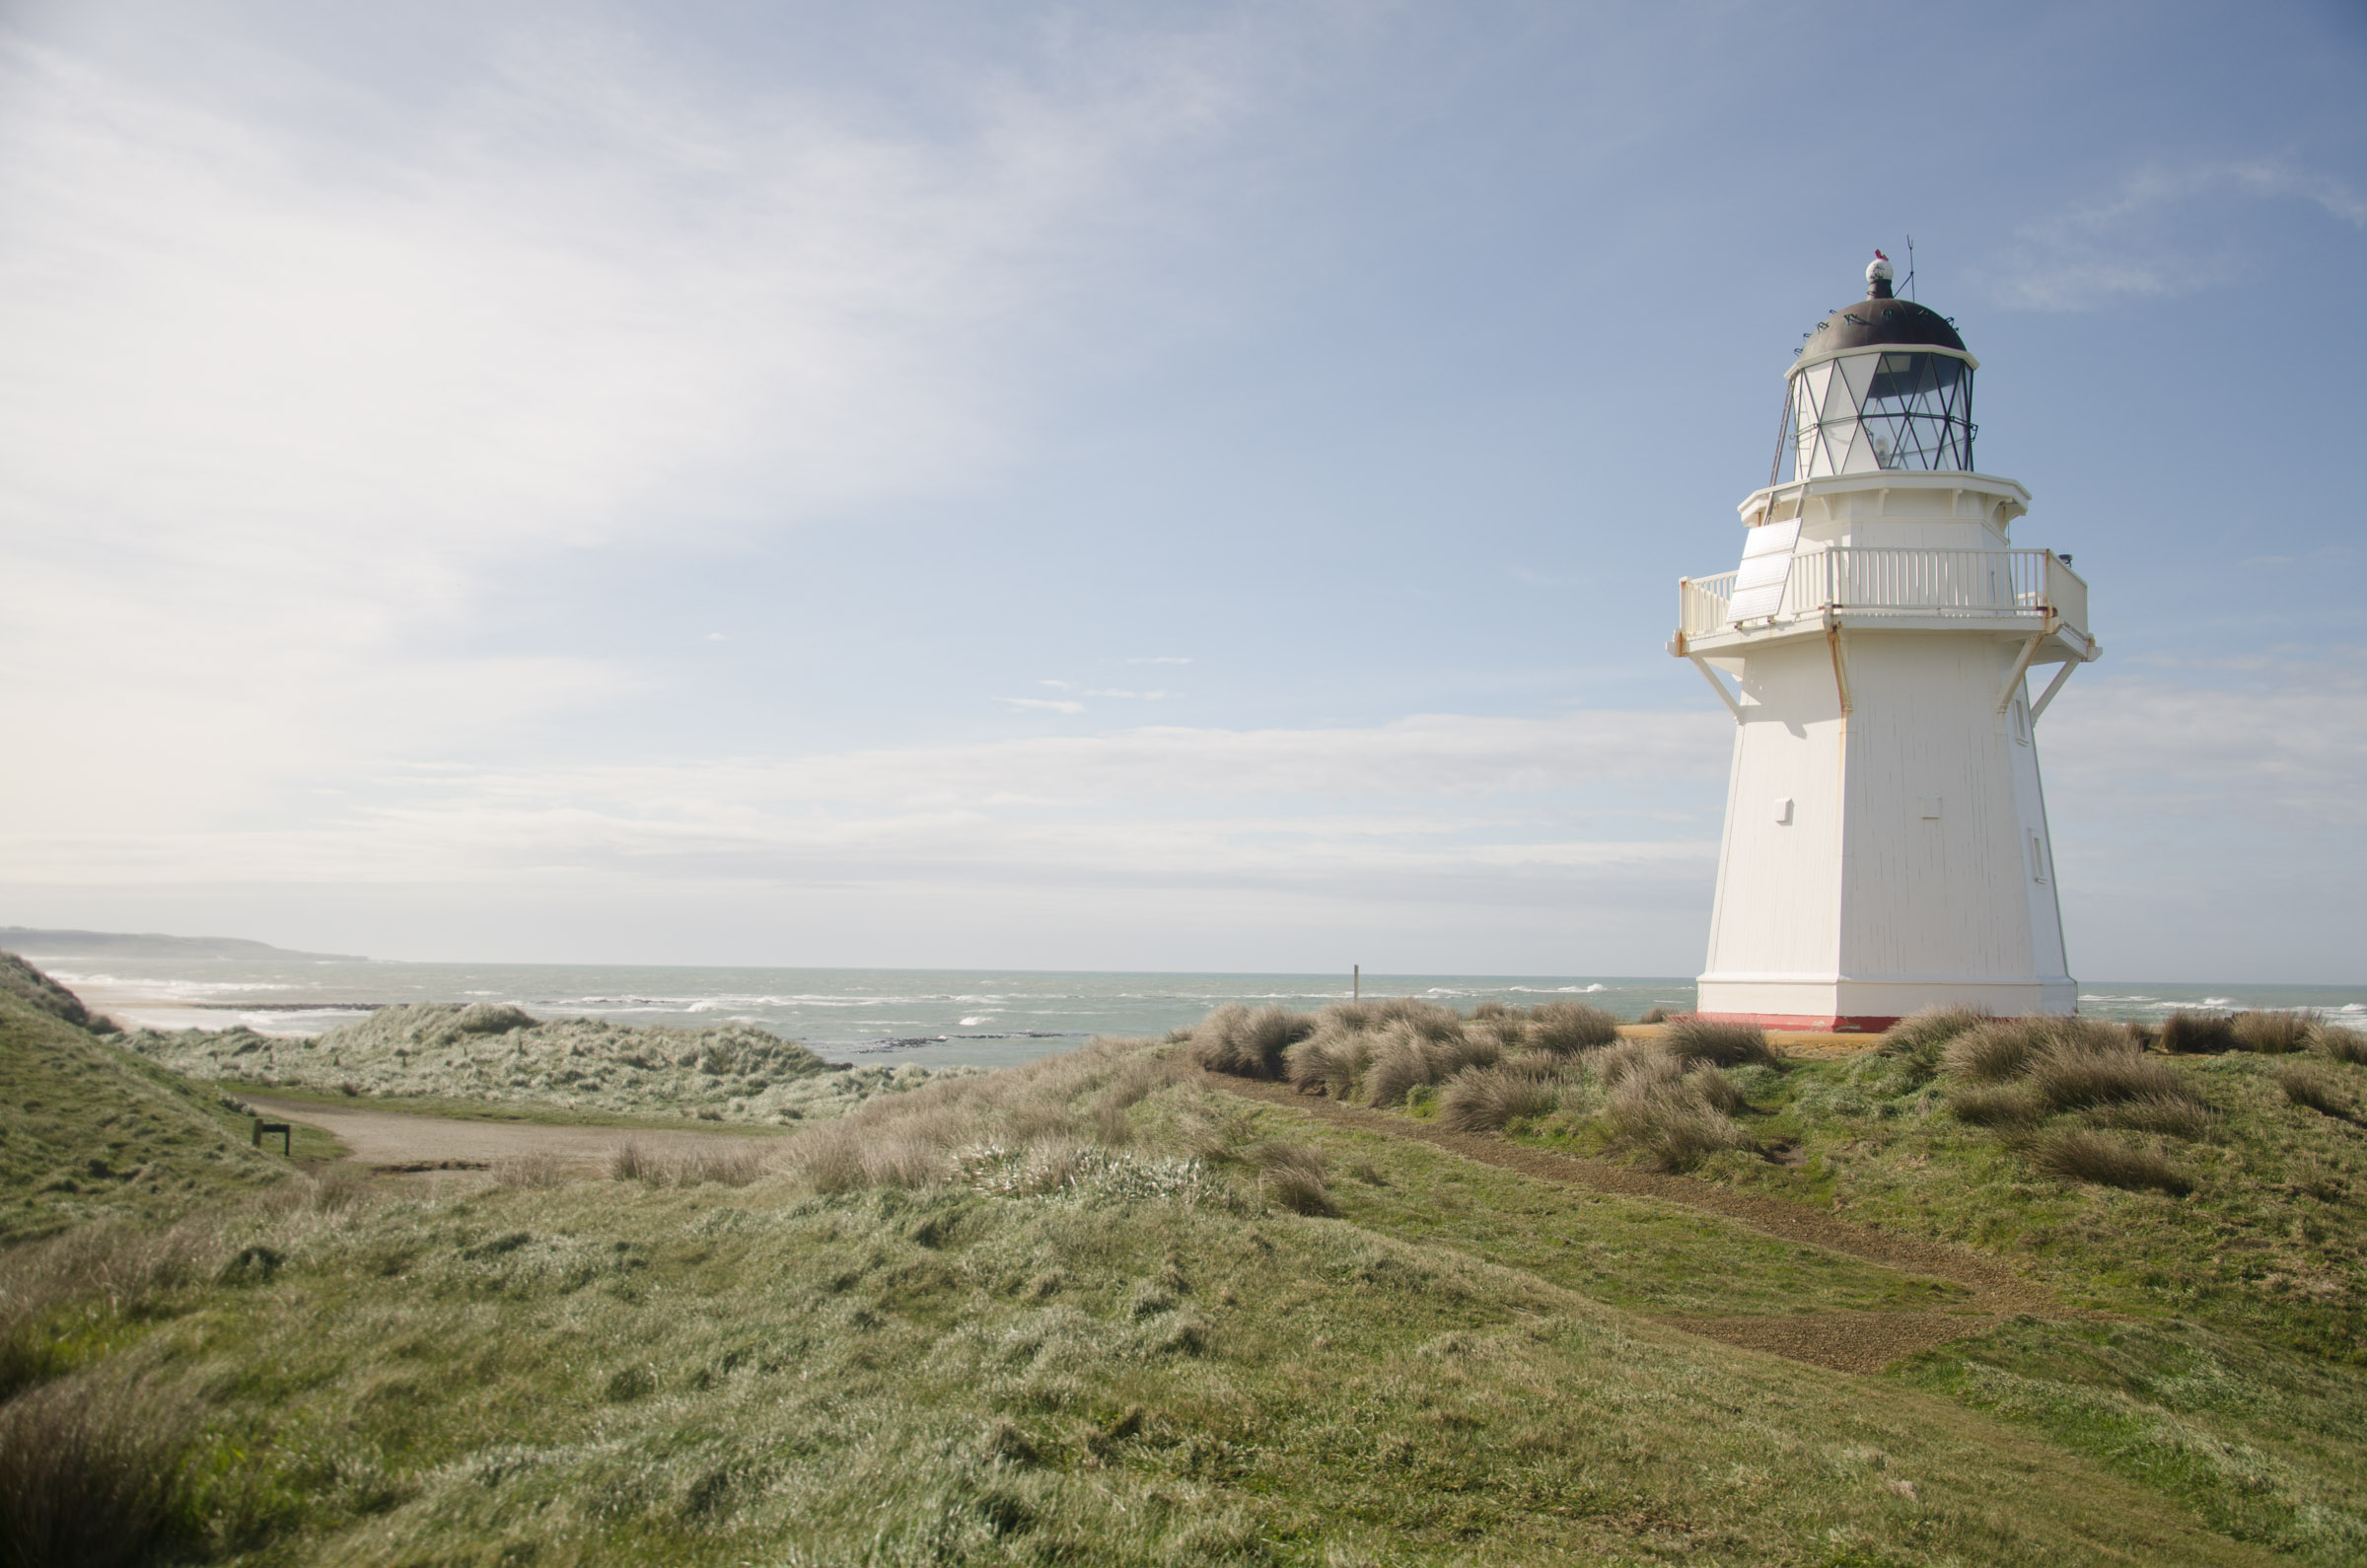 20131018_Catlins-_Timo_025